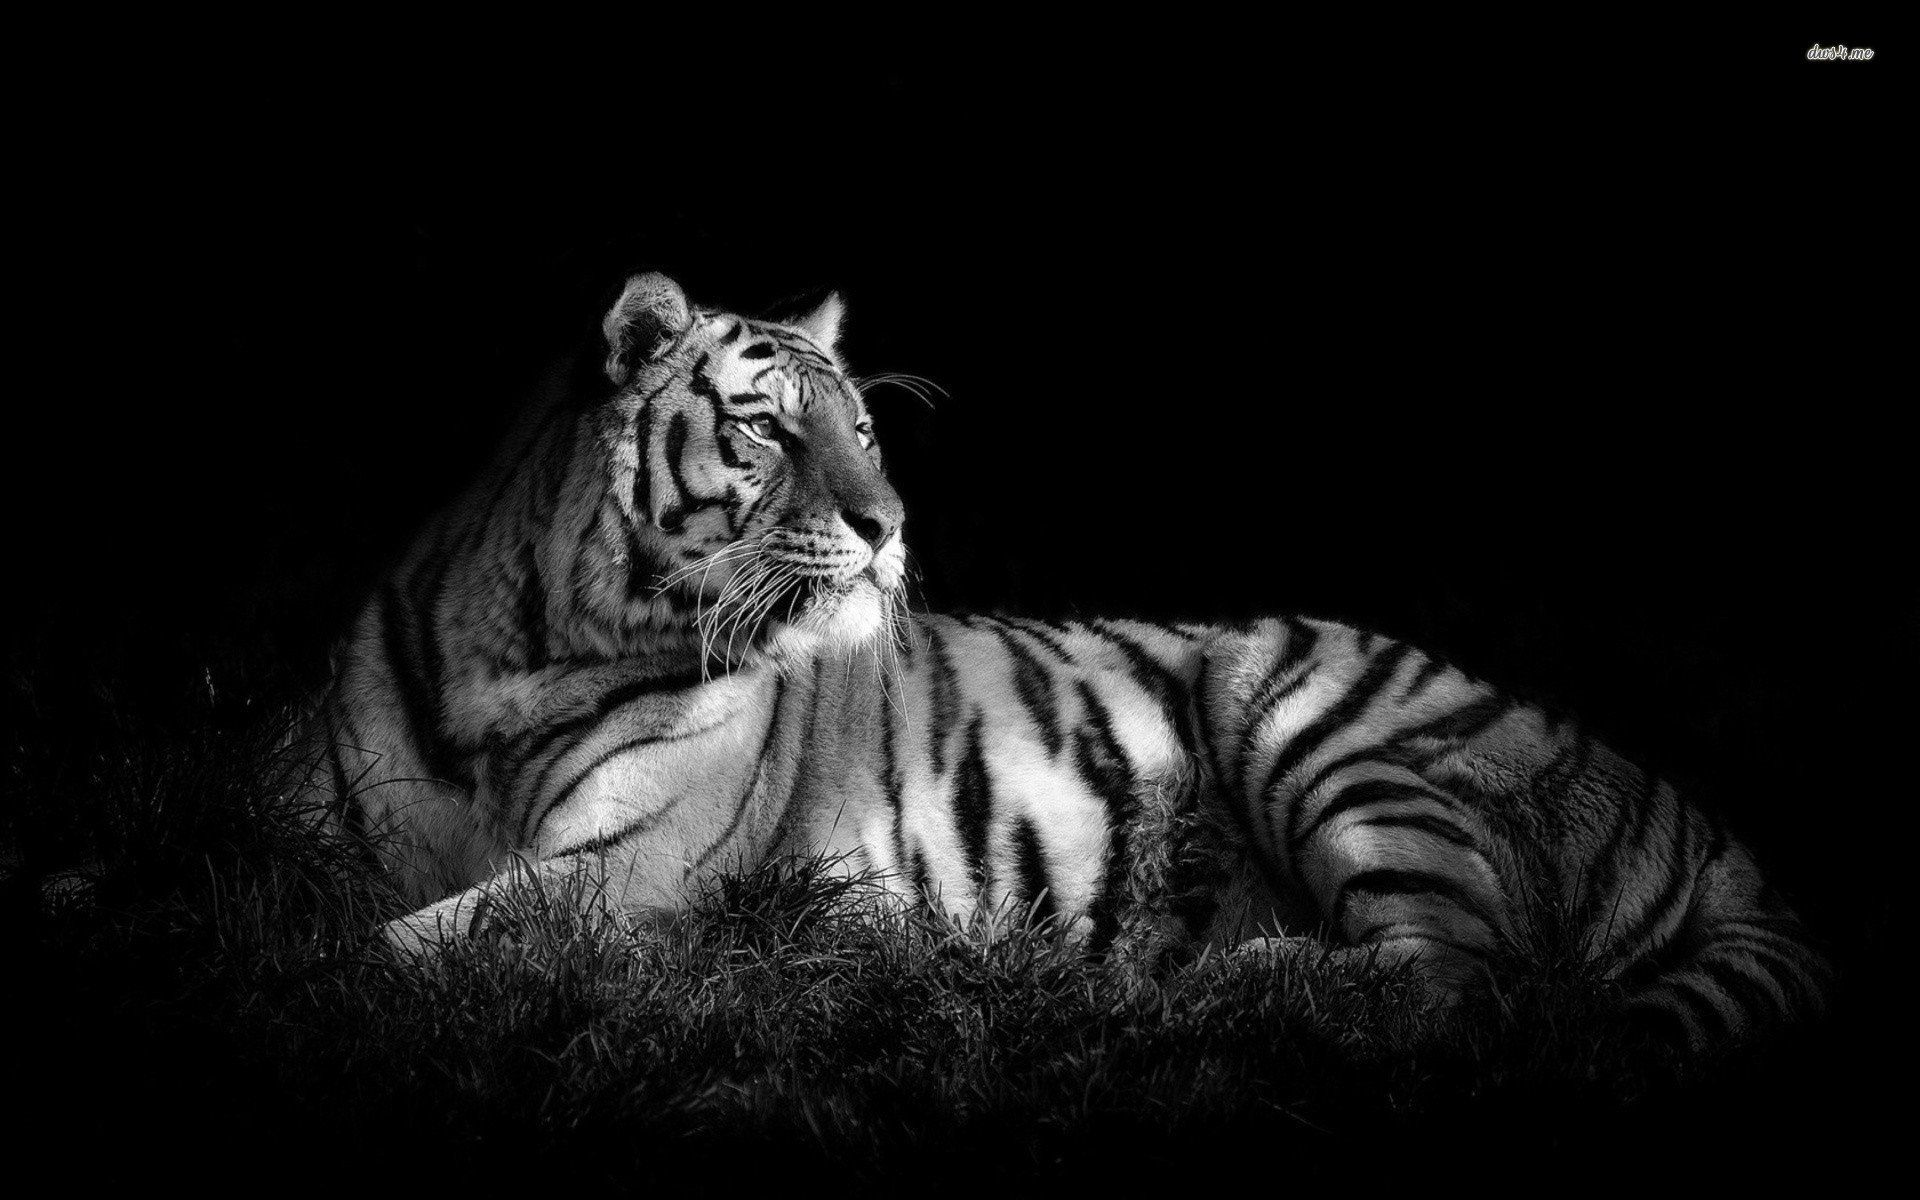 Tiger HD Wallpaper Tiger wallpaper, White tiger pictures